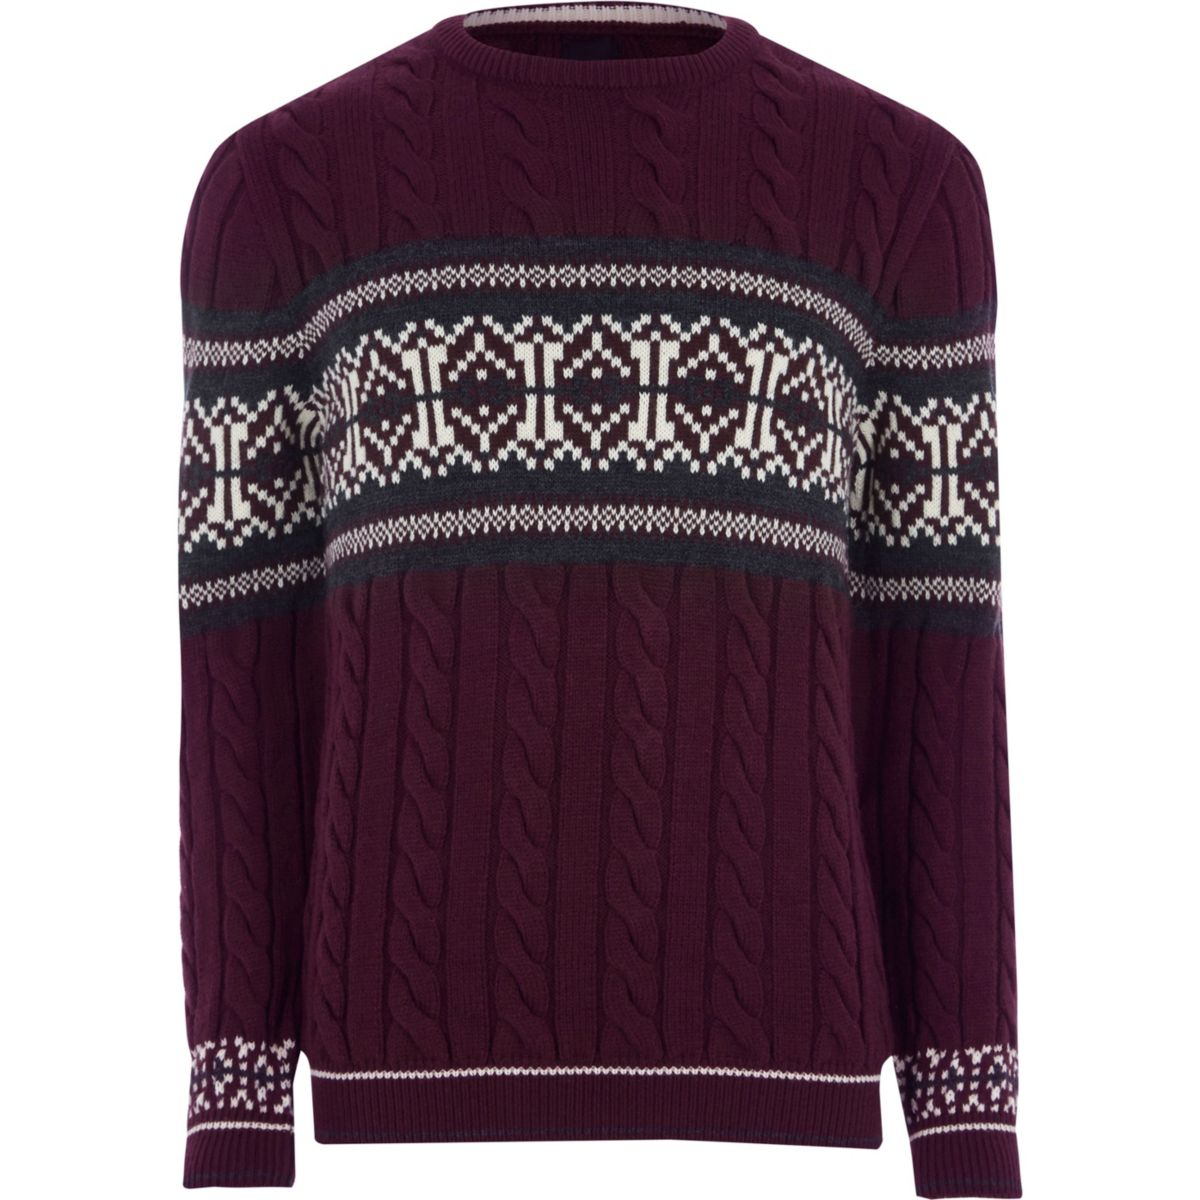 Burgundy cable knit Fairisle Christmas sweater - Sweaters ...